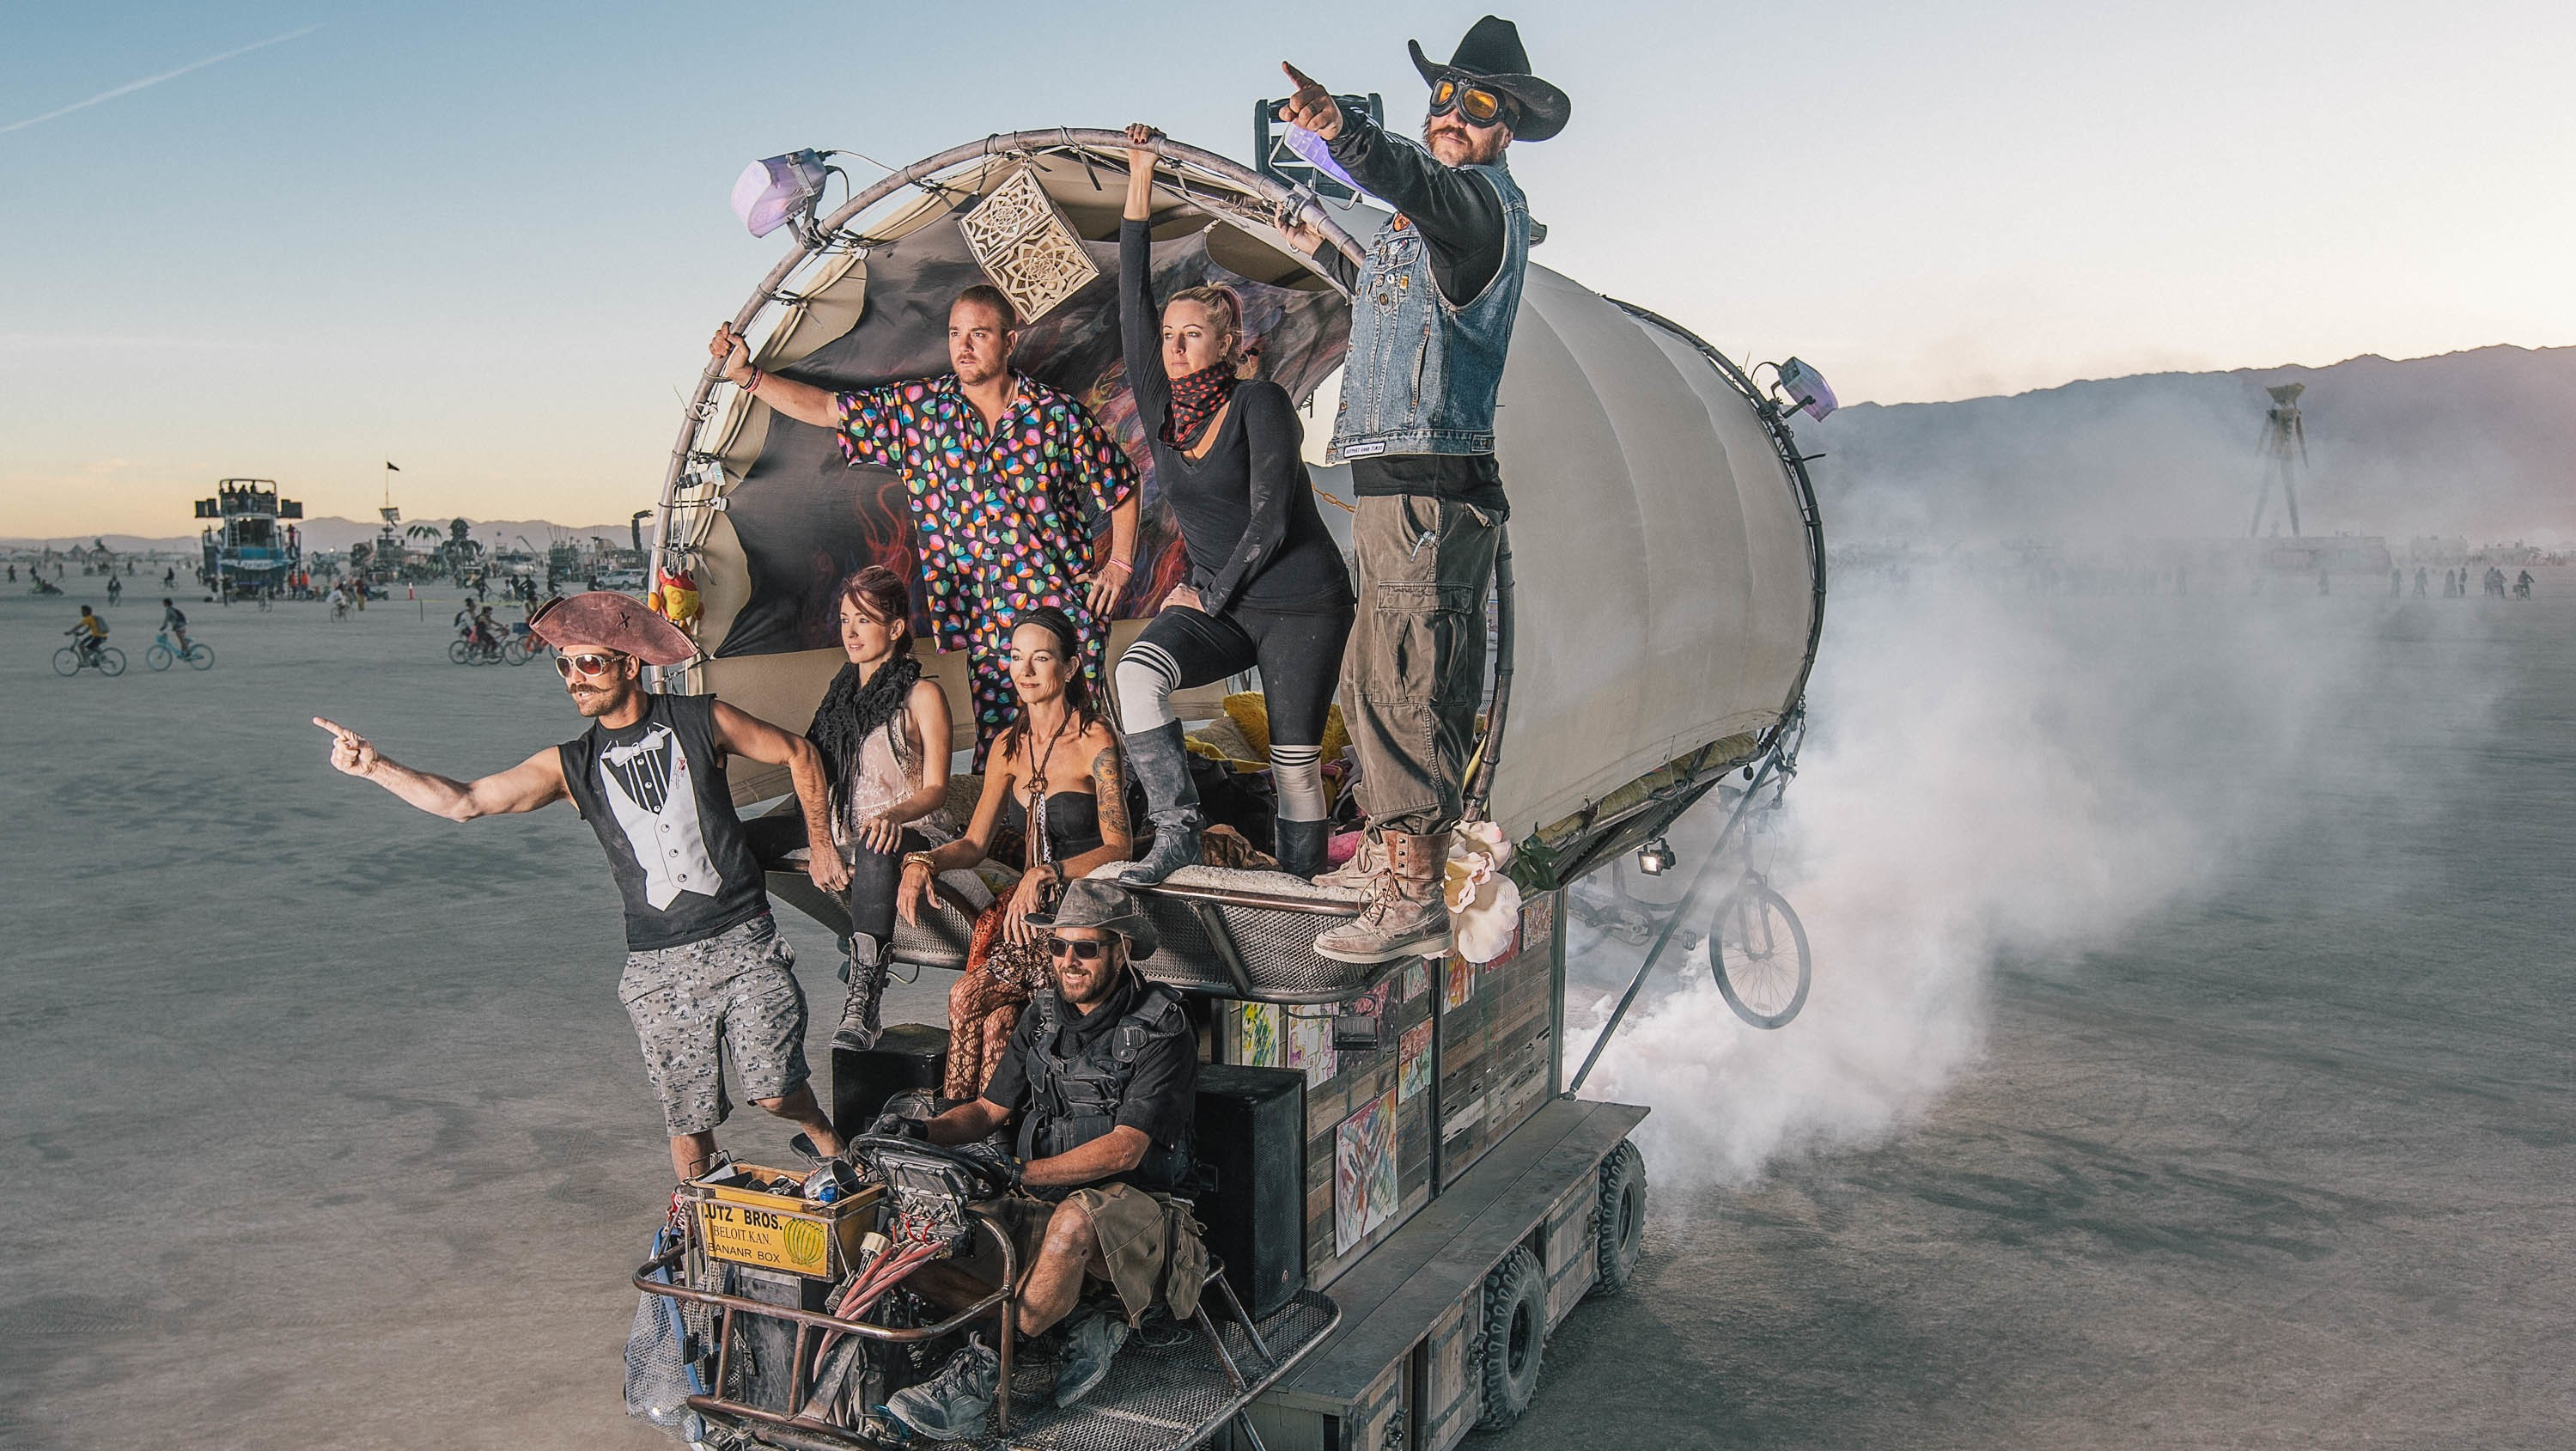 I Spent a Week Riding a Mutant Vehicle at Burning Man, and Here's What I Learned